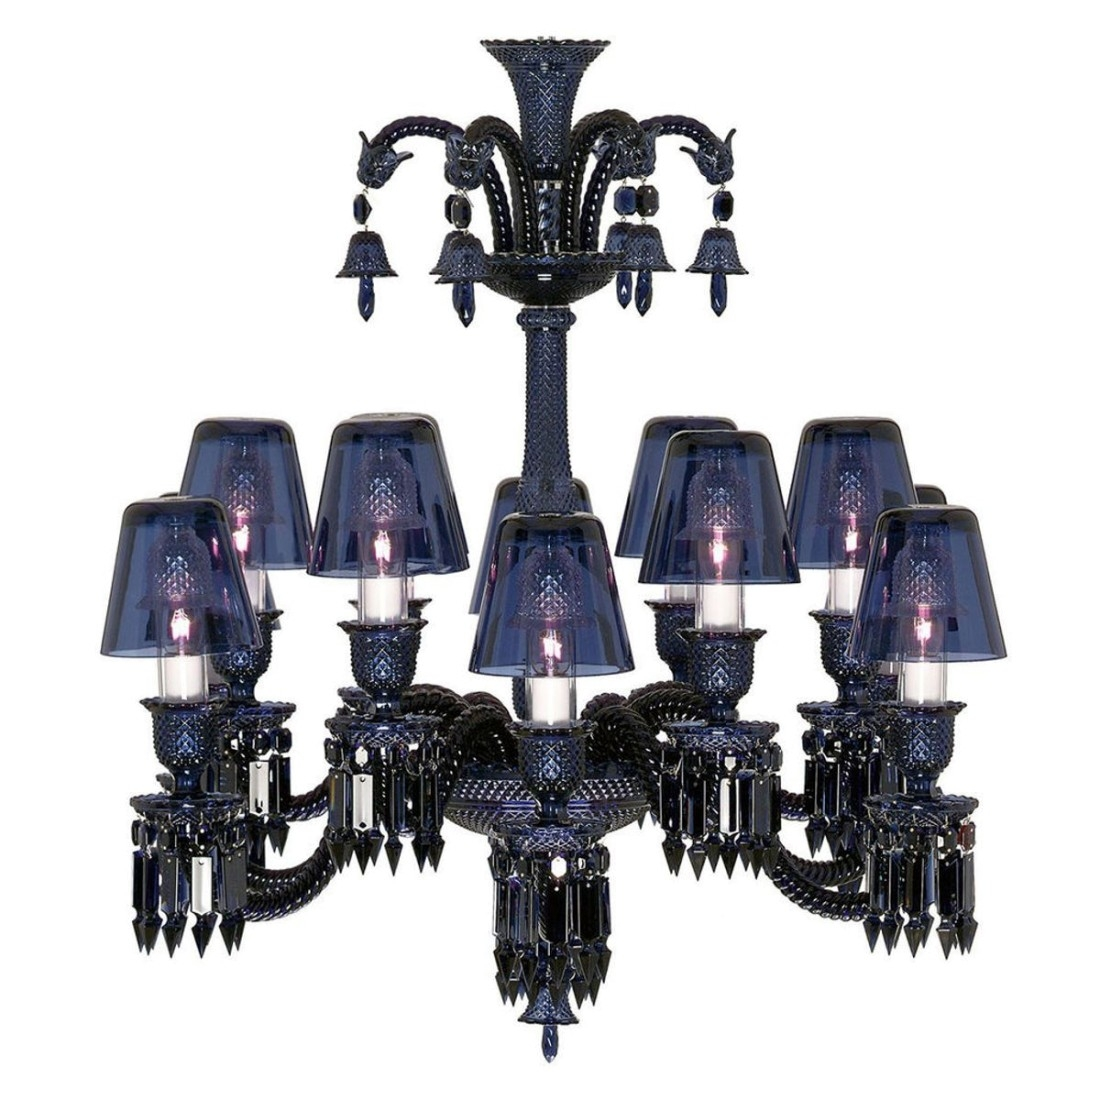 Zenith Midnight Chandeliers With Crystal Shades Baccarat Intended For Short Chandeliers (Image 24 of 25)